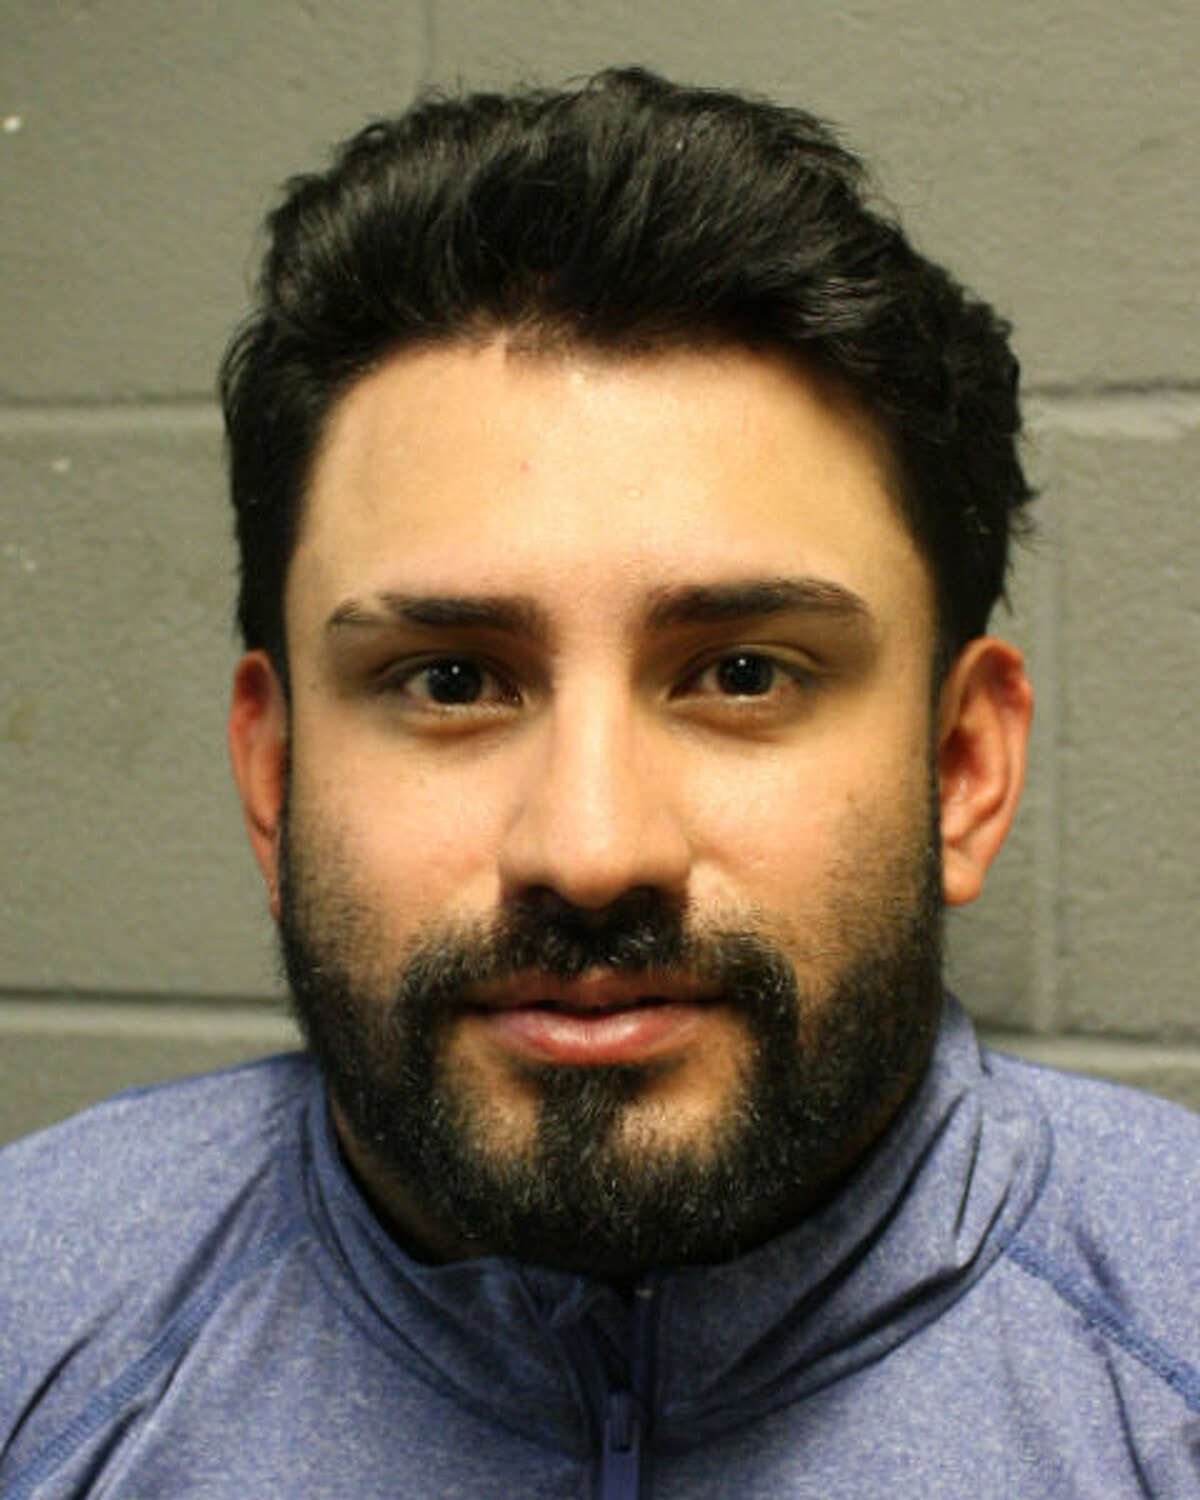 Herber Viera-Baires is facing charges for allegedly being involved in a scheme that involves stealing cars from Houston dealerships and reselling them online through Craigslist and OfferUp.